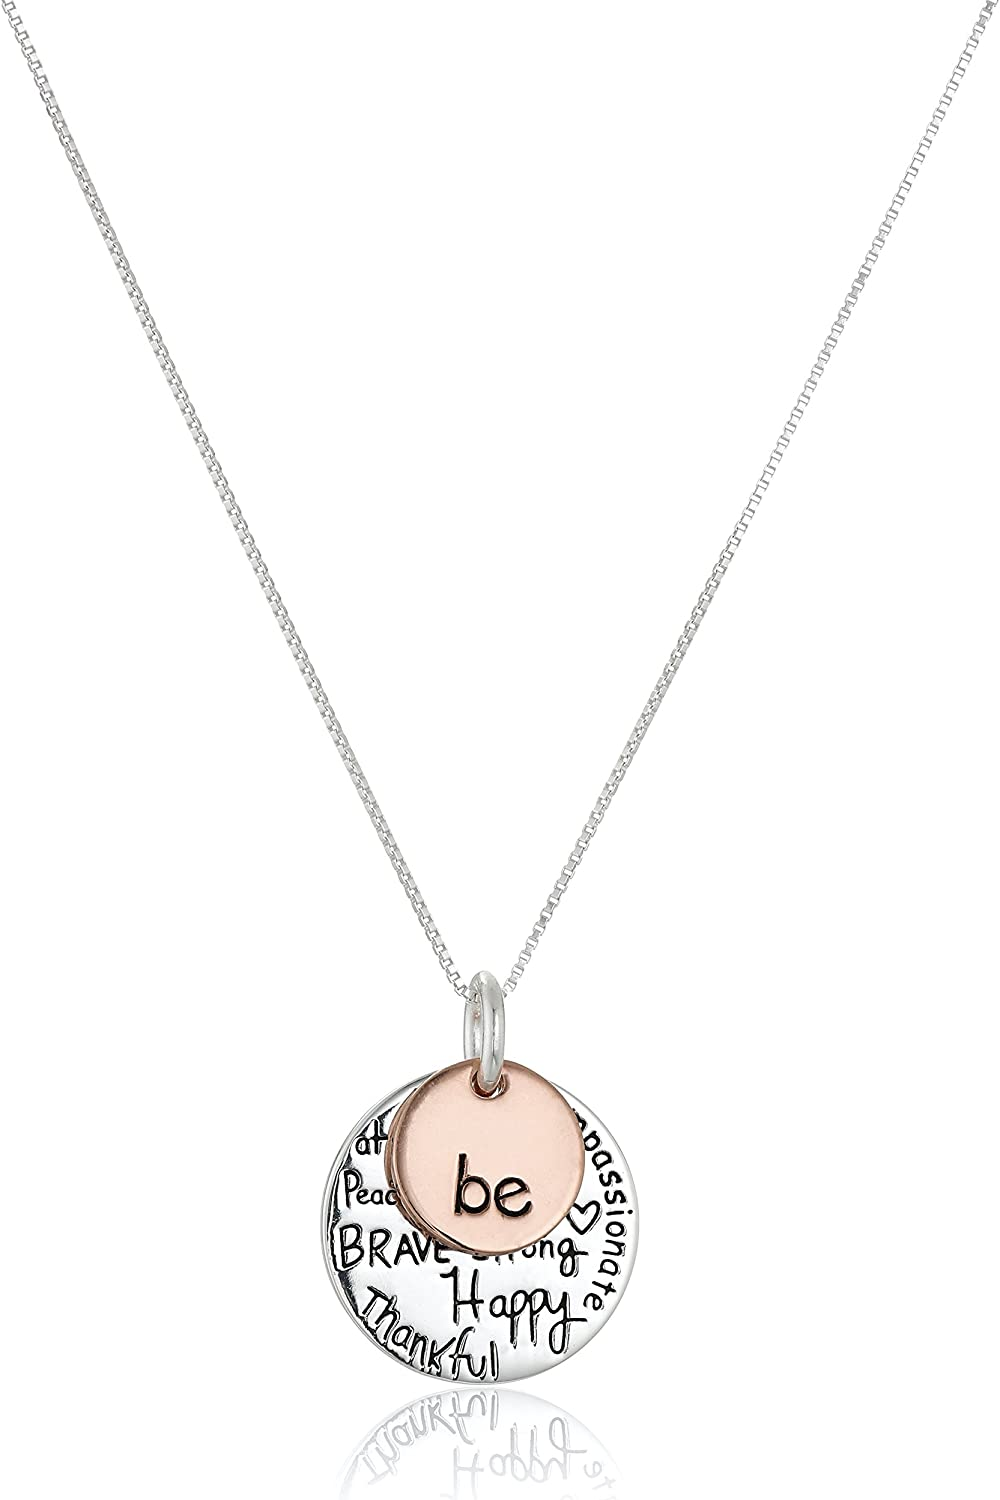 Sterling Silver MOM Charm with 18 INCH Box Chain Necklace Charms,Pendant and Bracelet by Easy to be happy